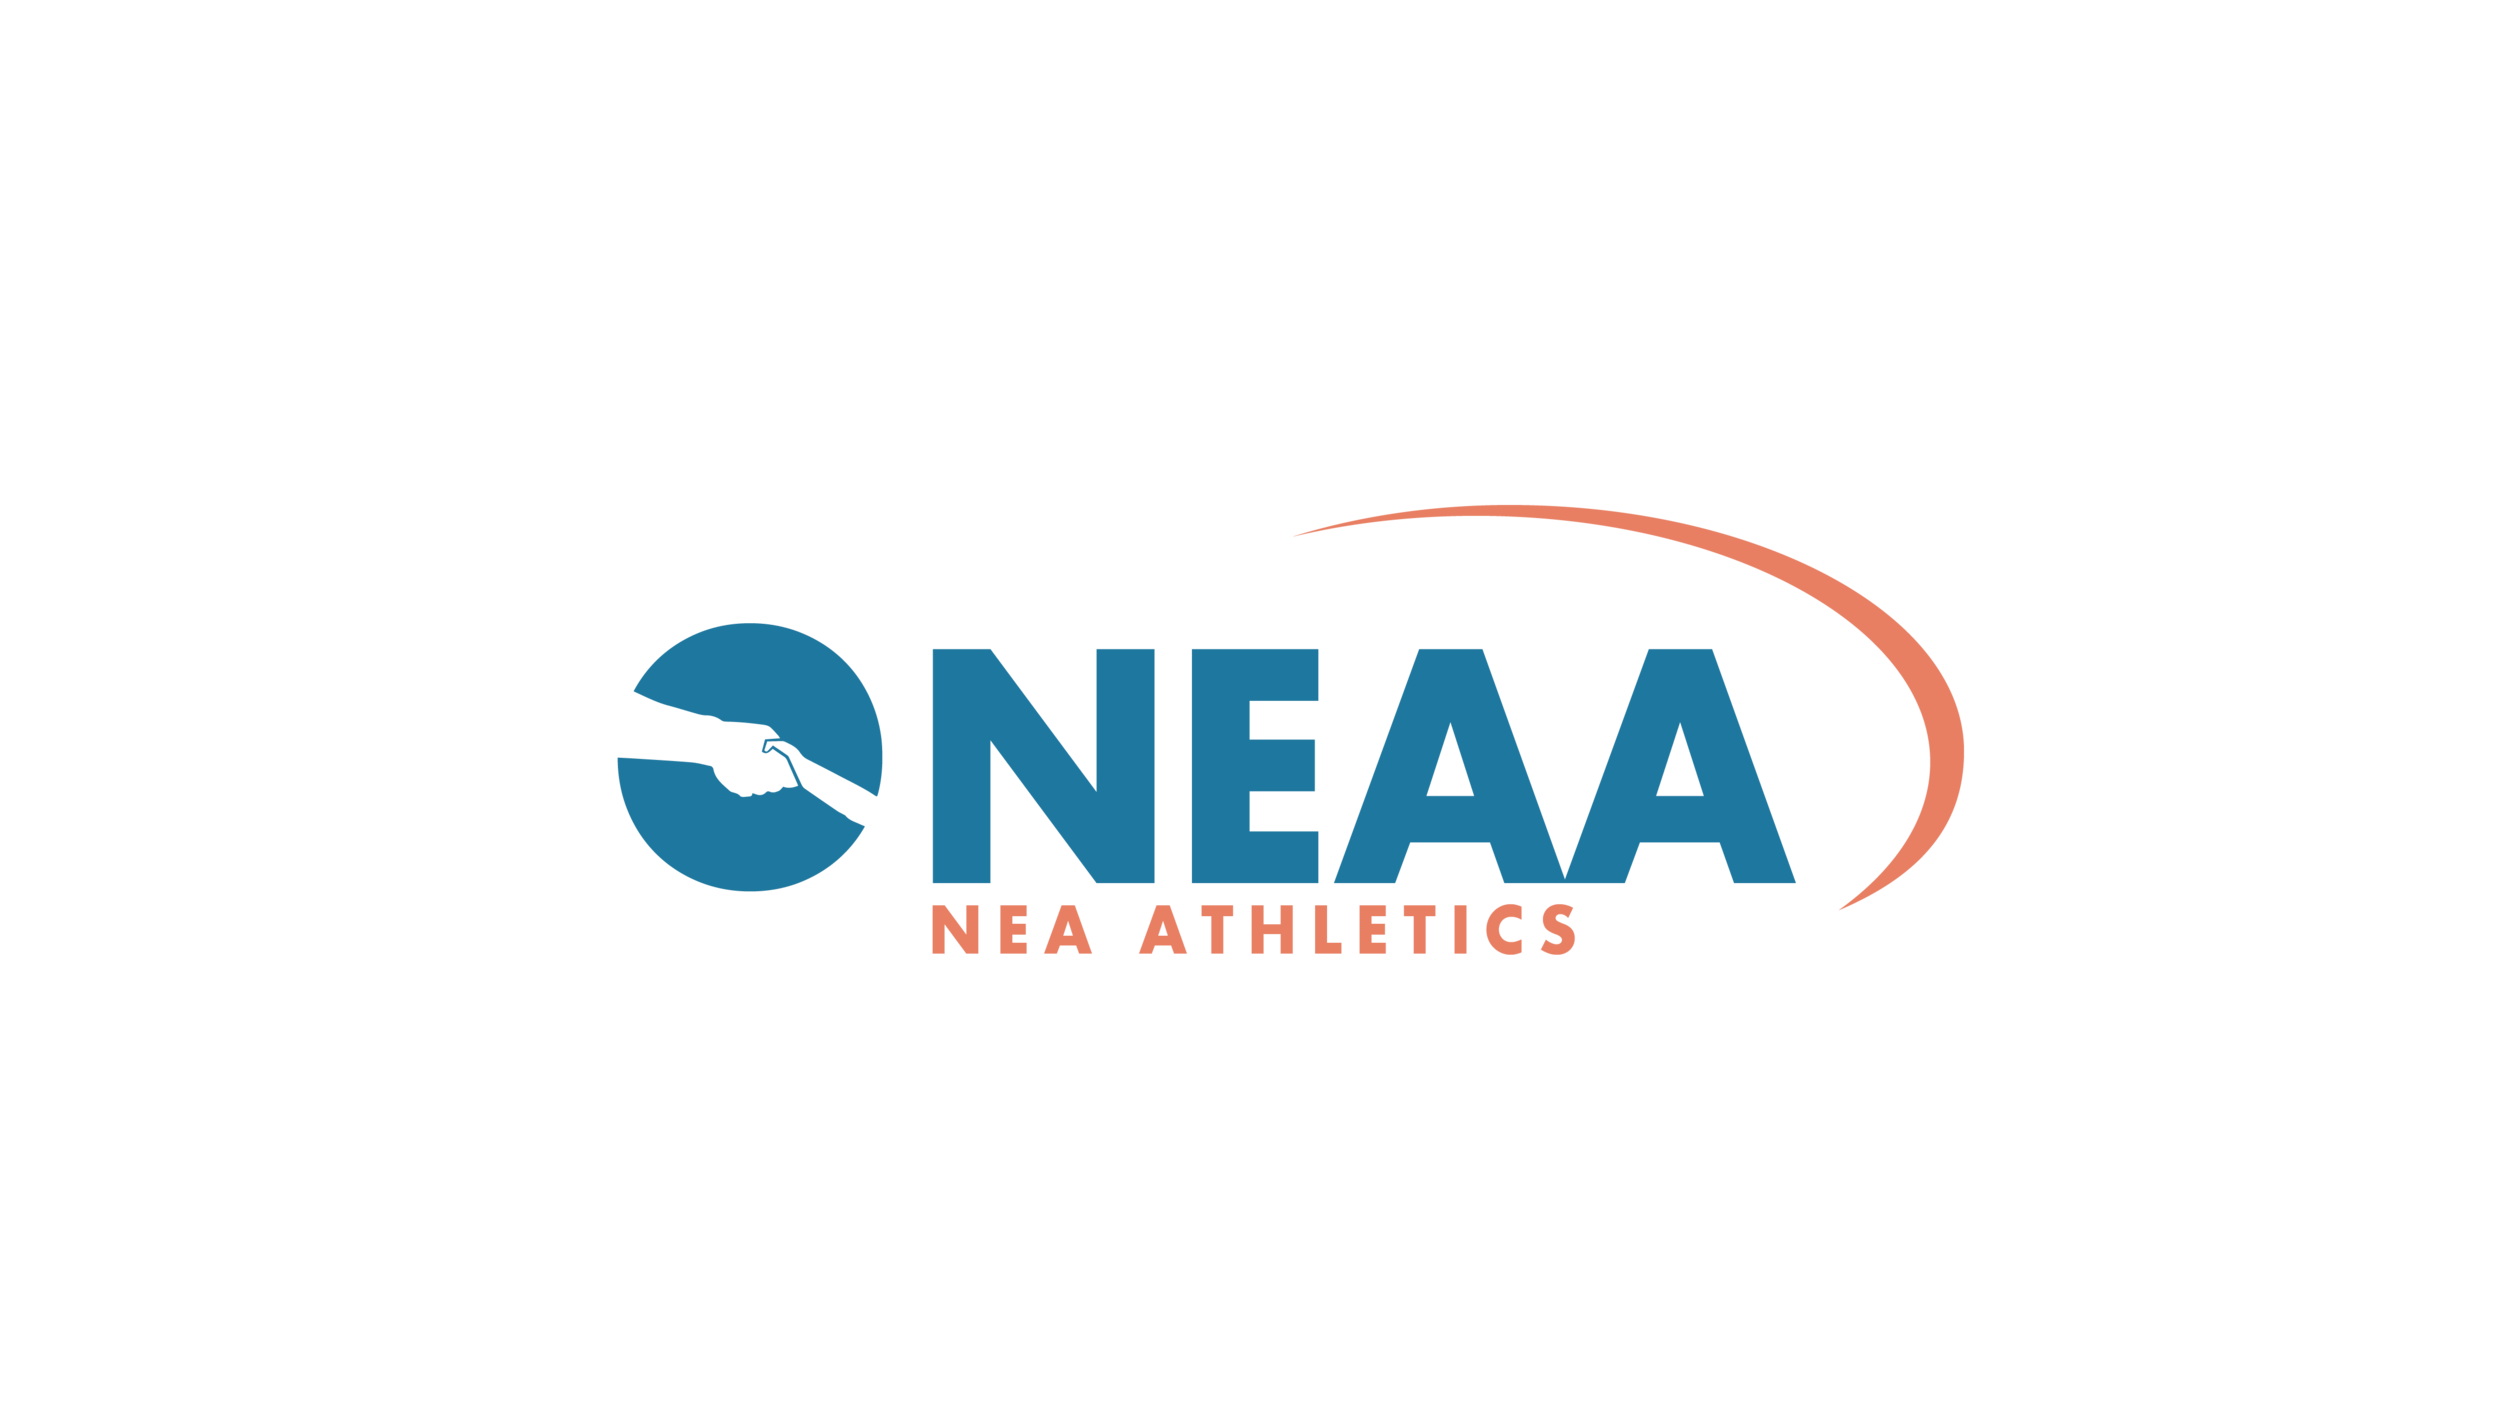 neaa logo 2019 small@4x.png